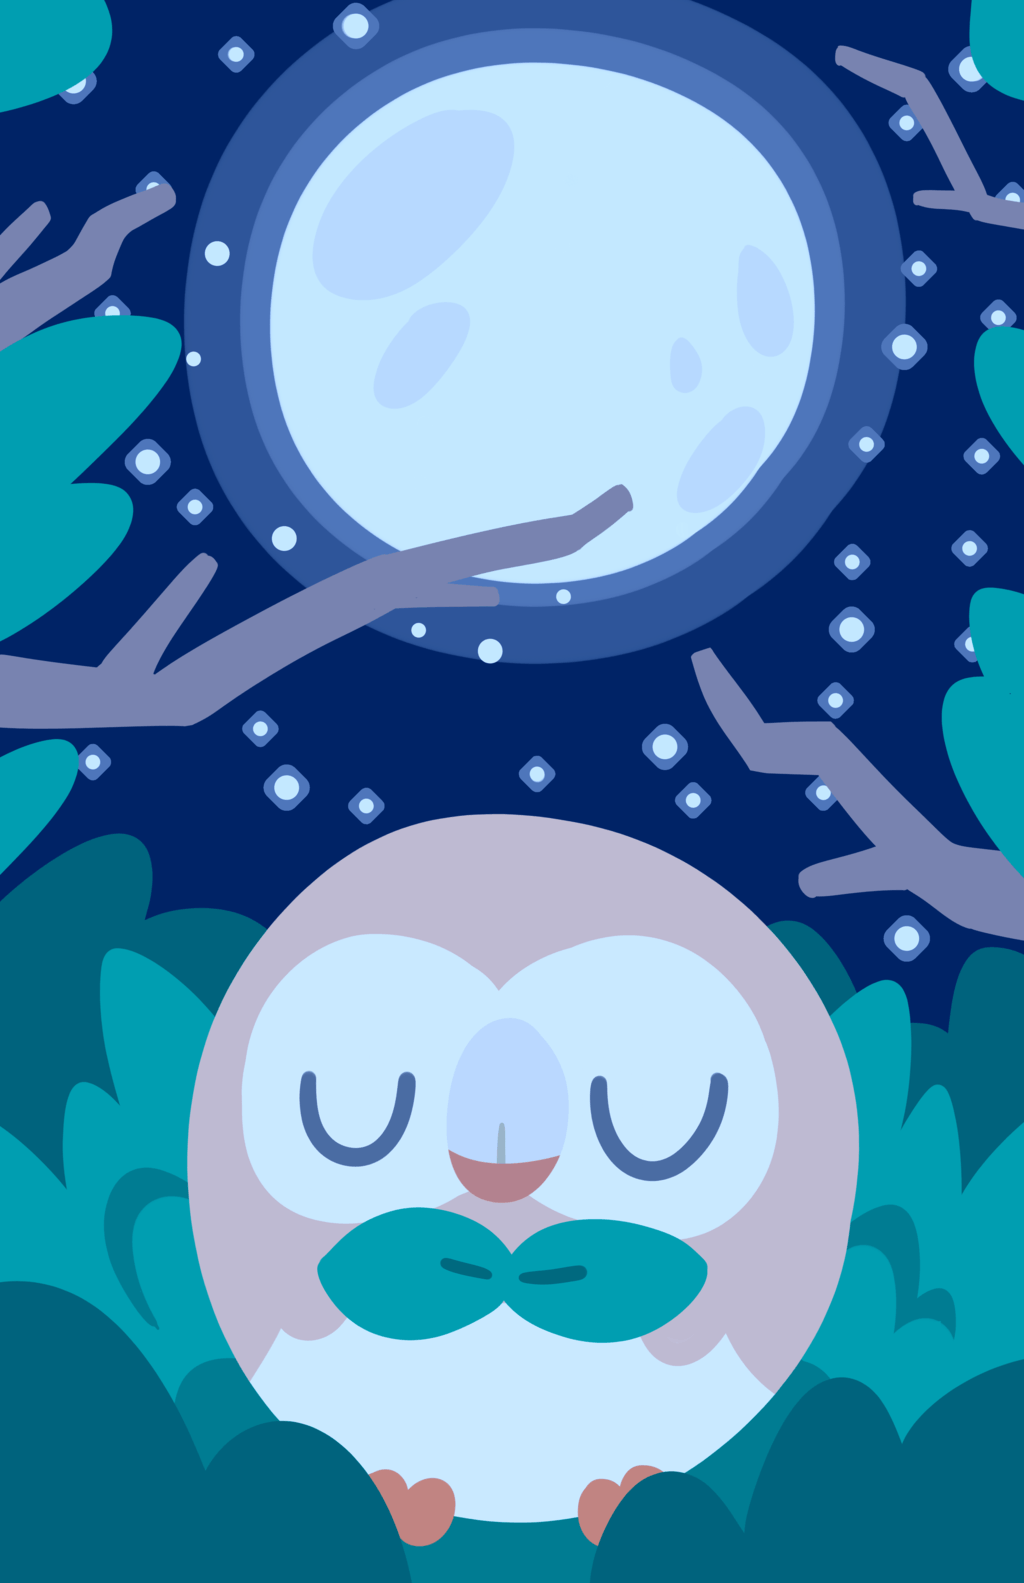 Upvote now! 999 upvotes and rowlet will wake up! #TeamRowlet : pokemon